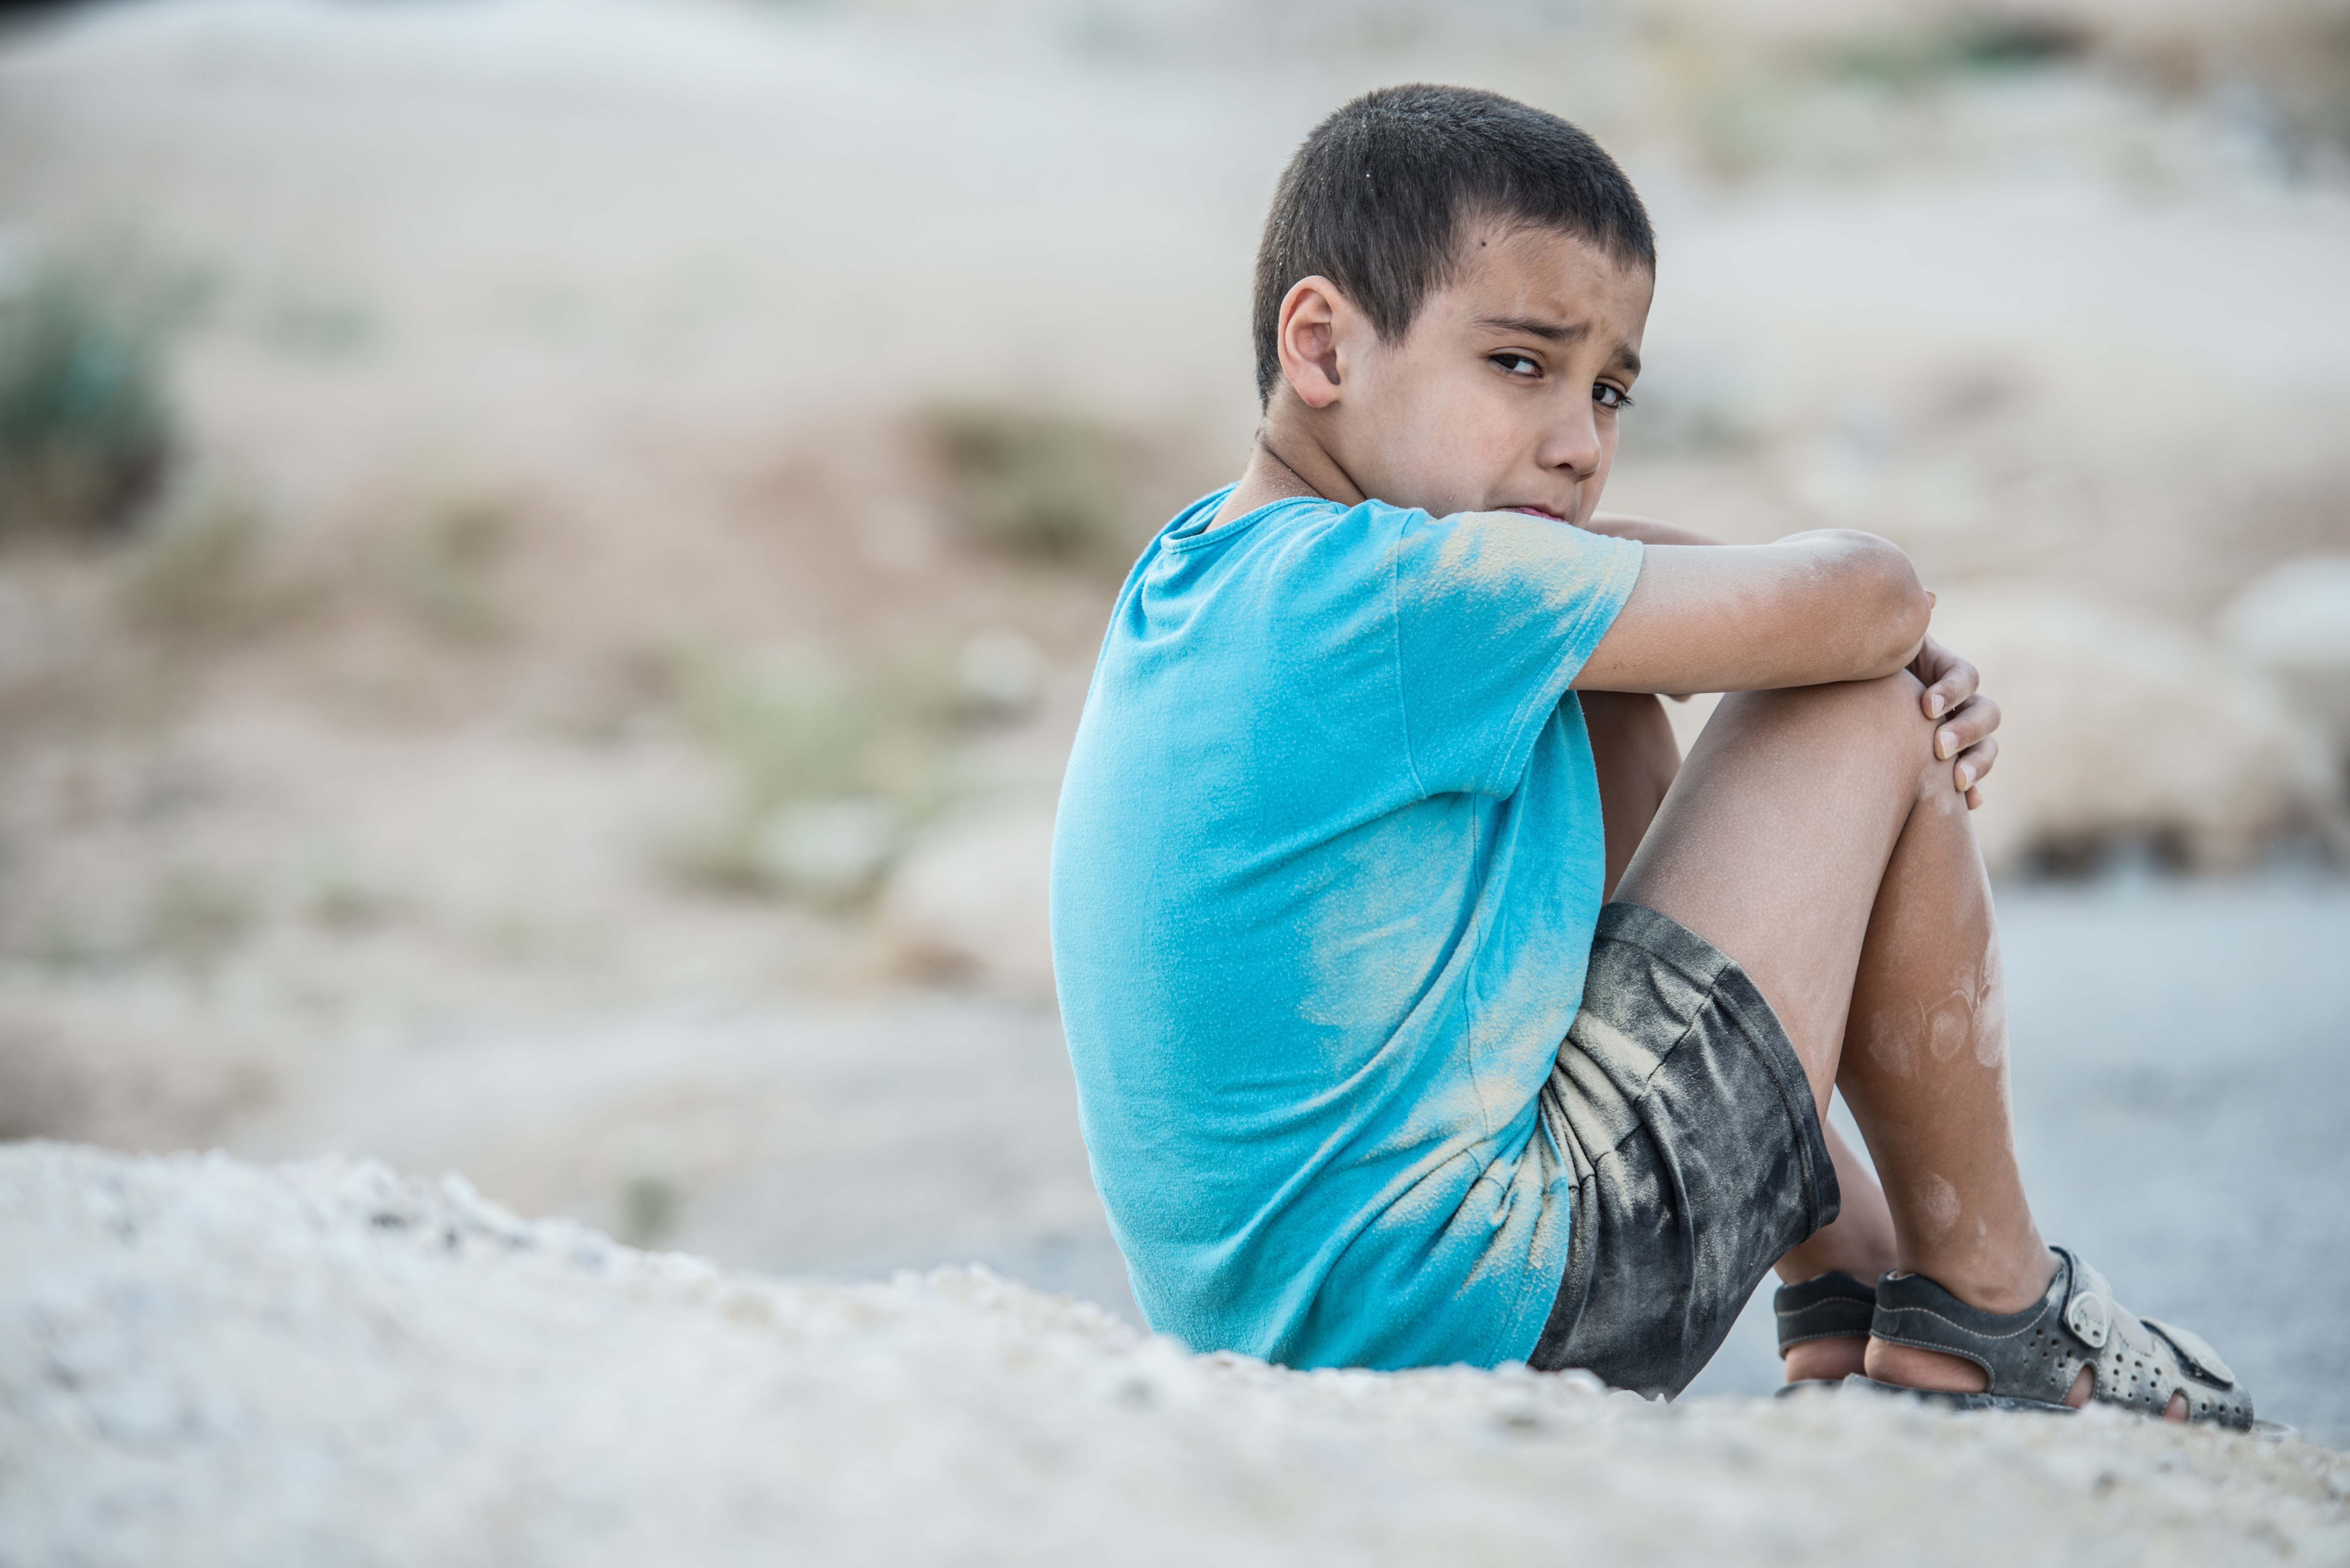 Syrian Refugee Appeal Campaign Image